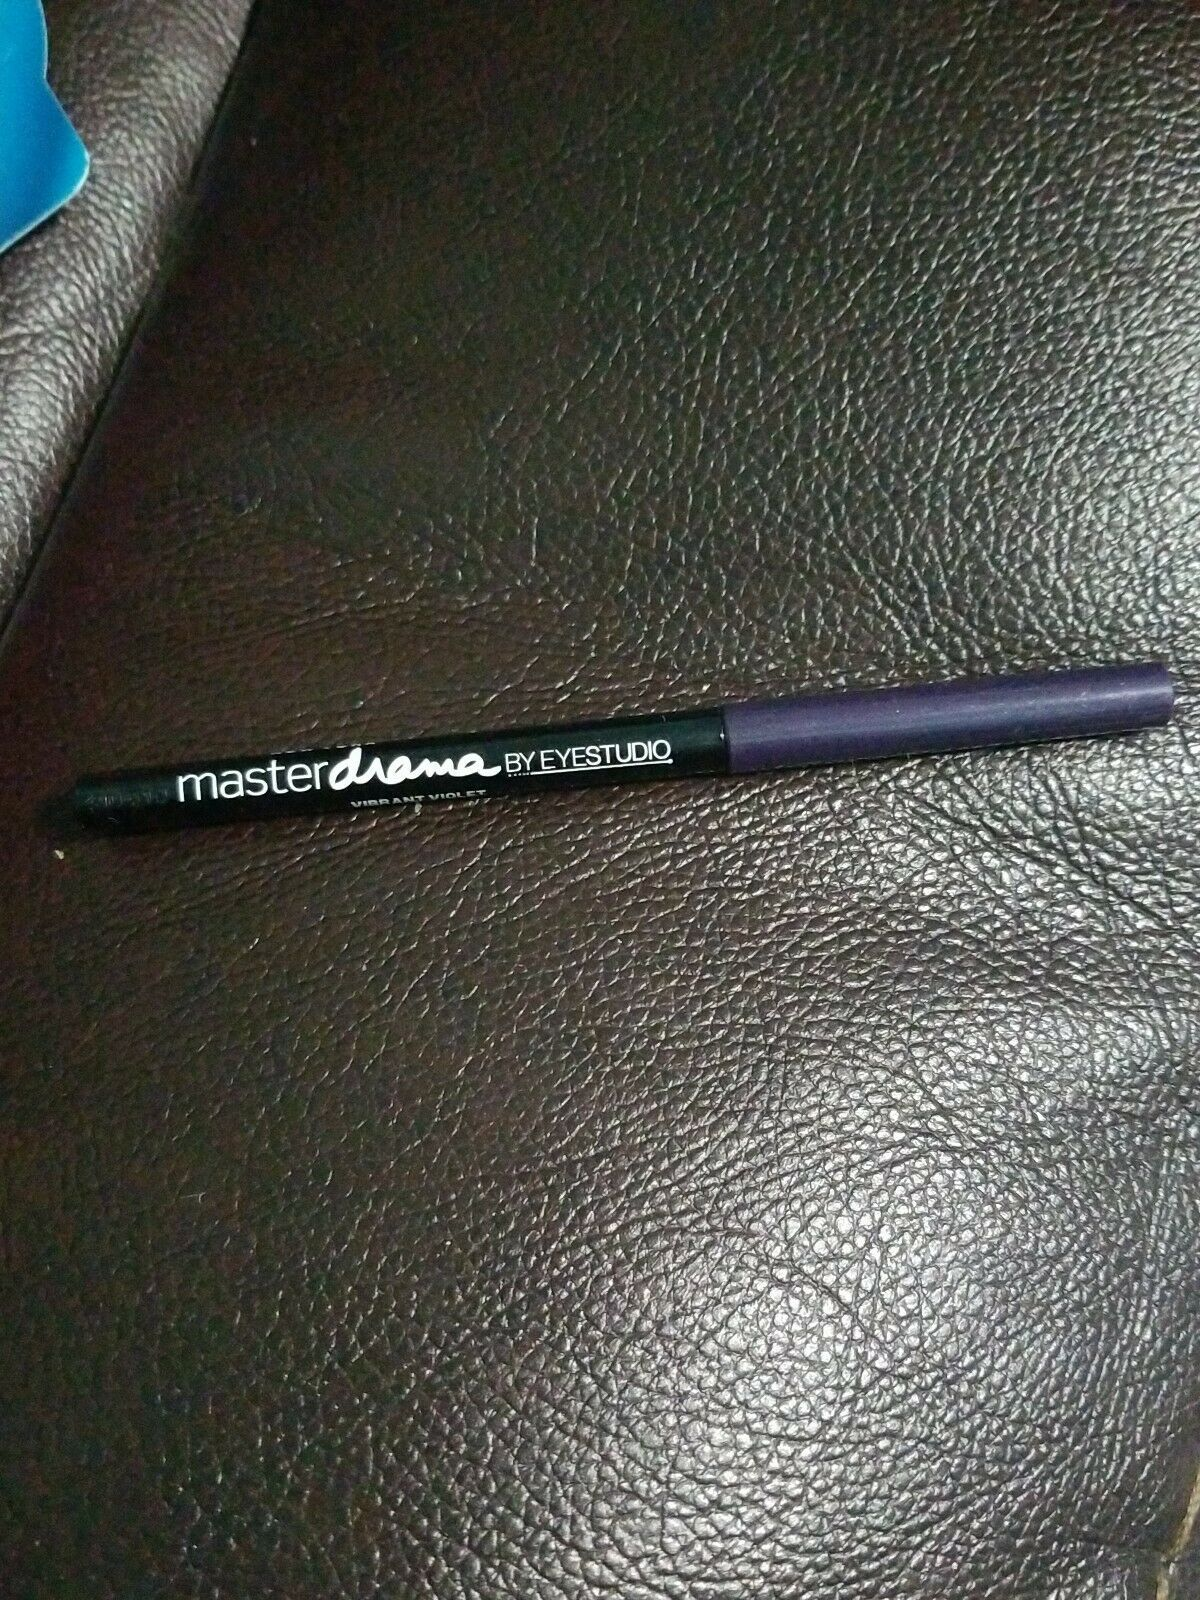 Primary image for Maybelline Eye Studio Master Drama Cream Pencil